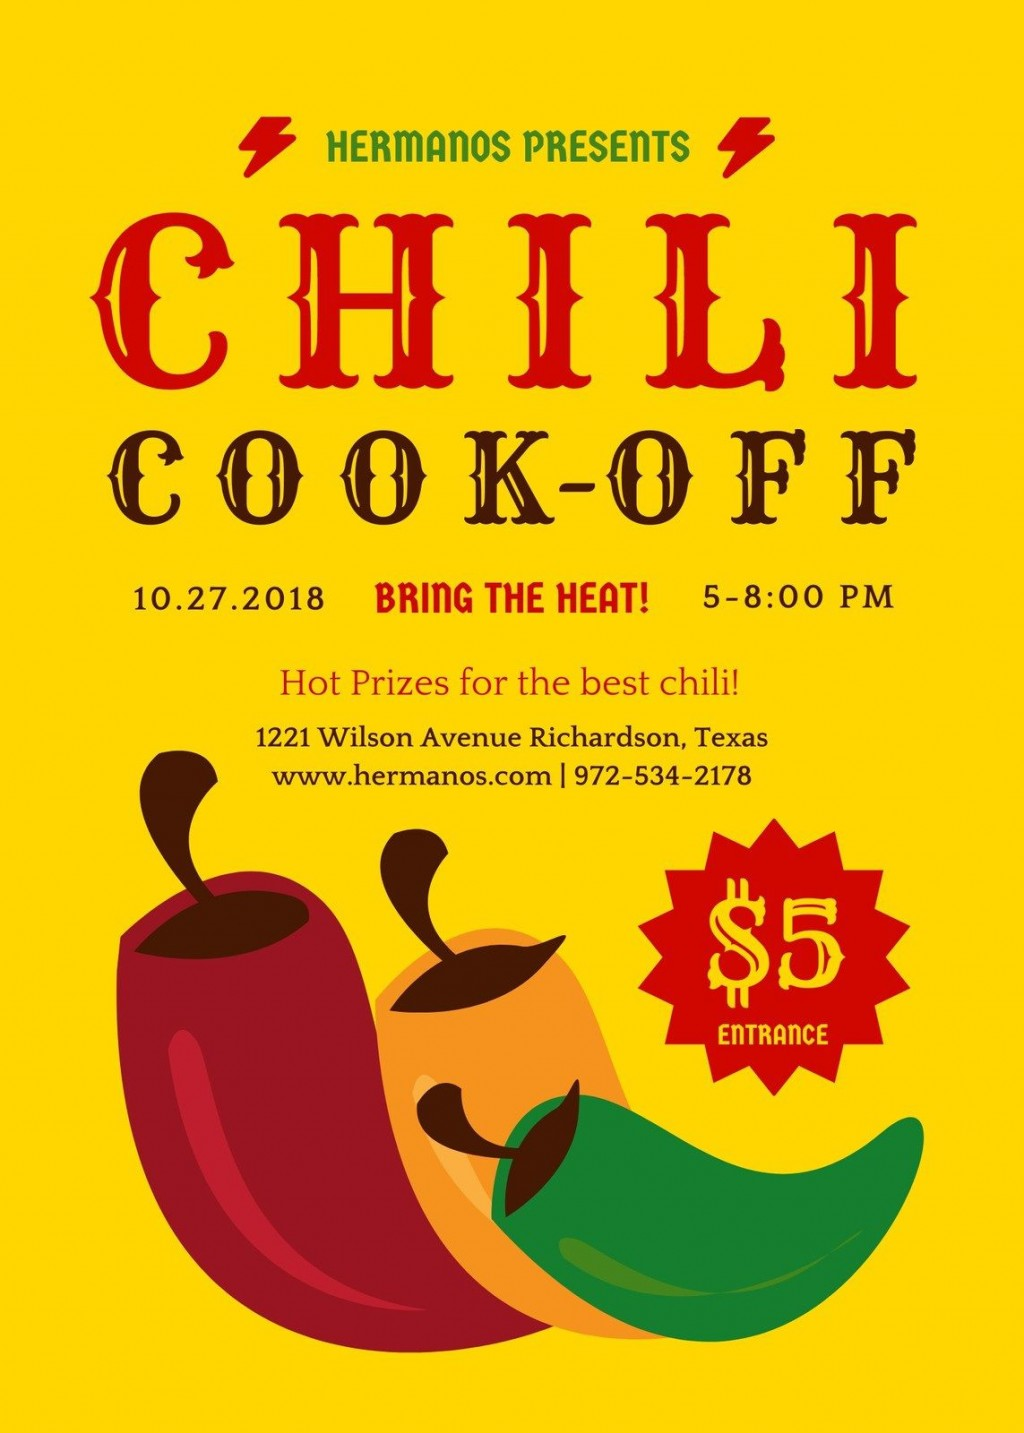 008 Excellent Chili Cook Off Flyer Template Example  Halloween Office PowerpointLarge